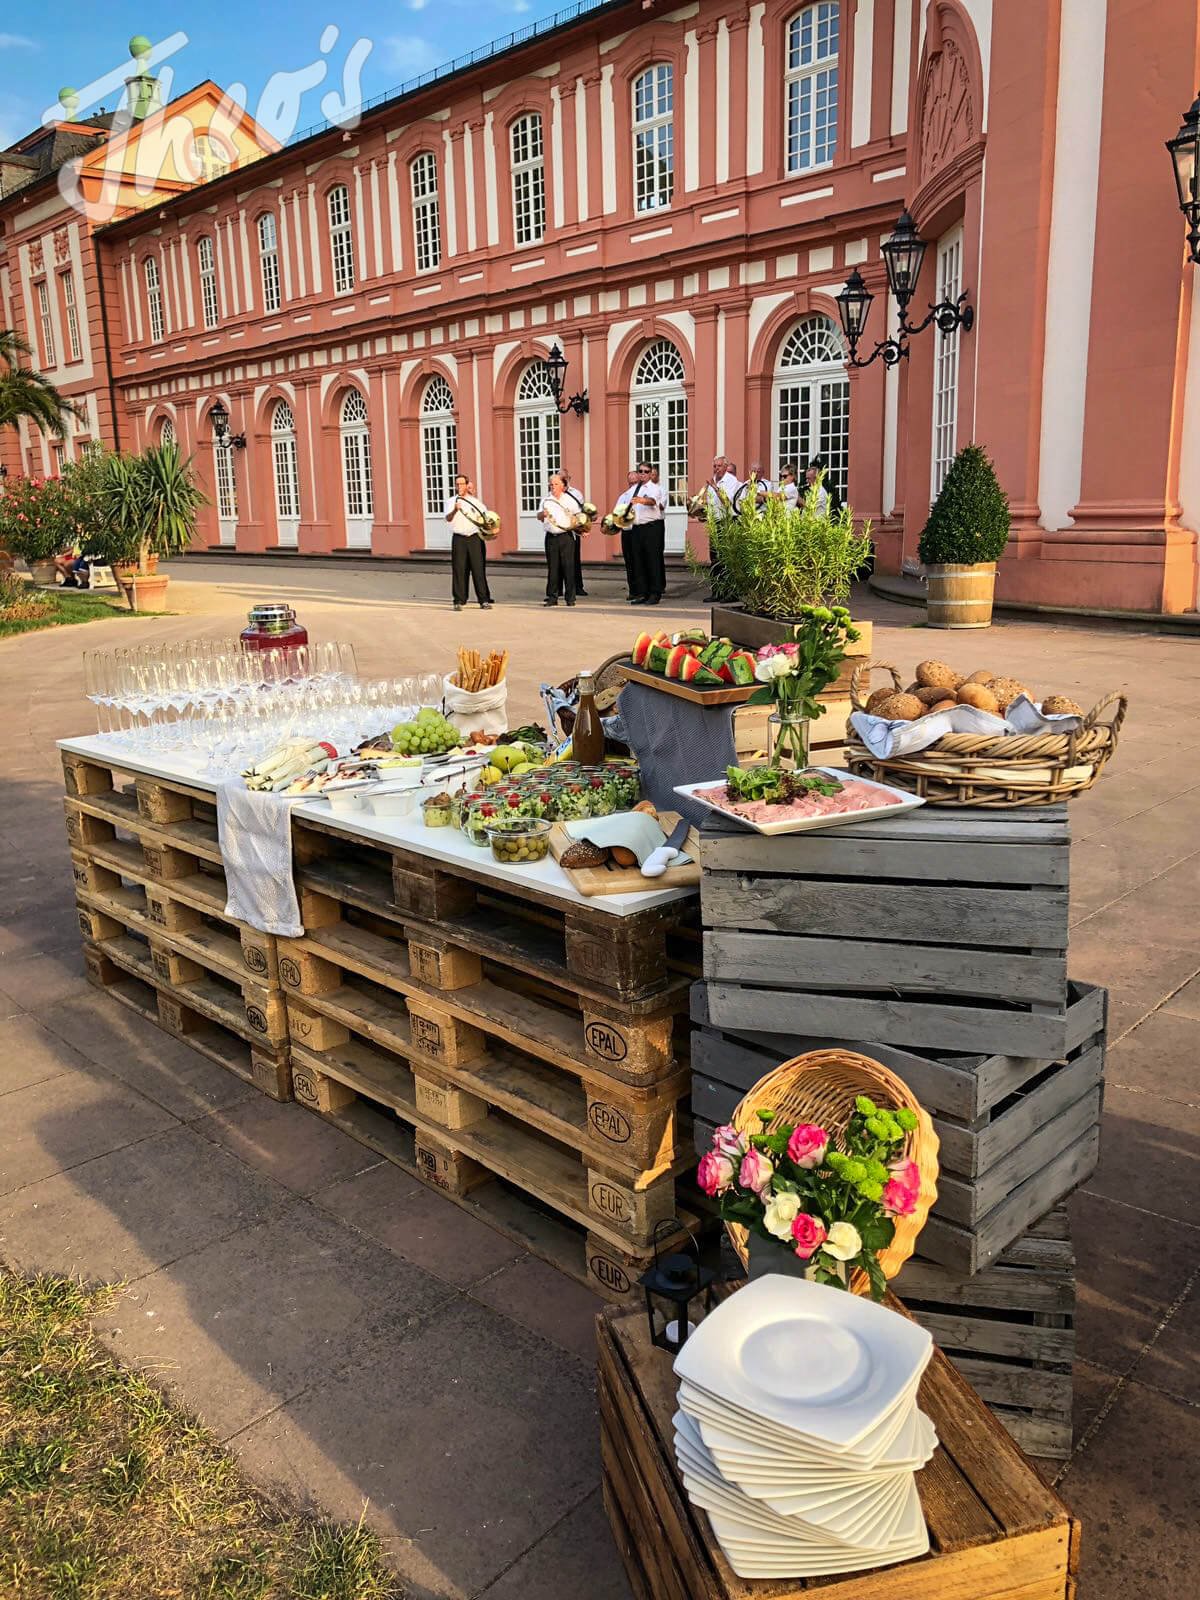 Picknick_Schloss_Biebrich_Schlosspark_party_was_-7